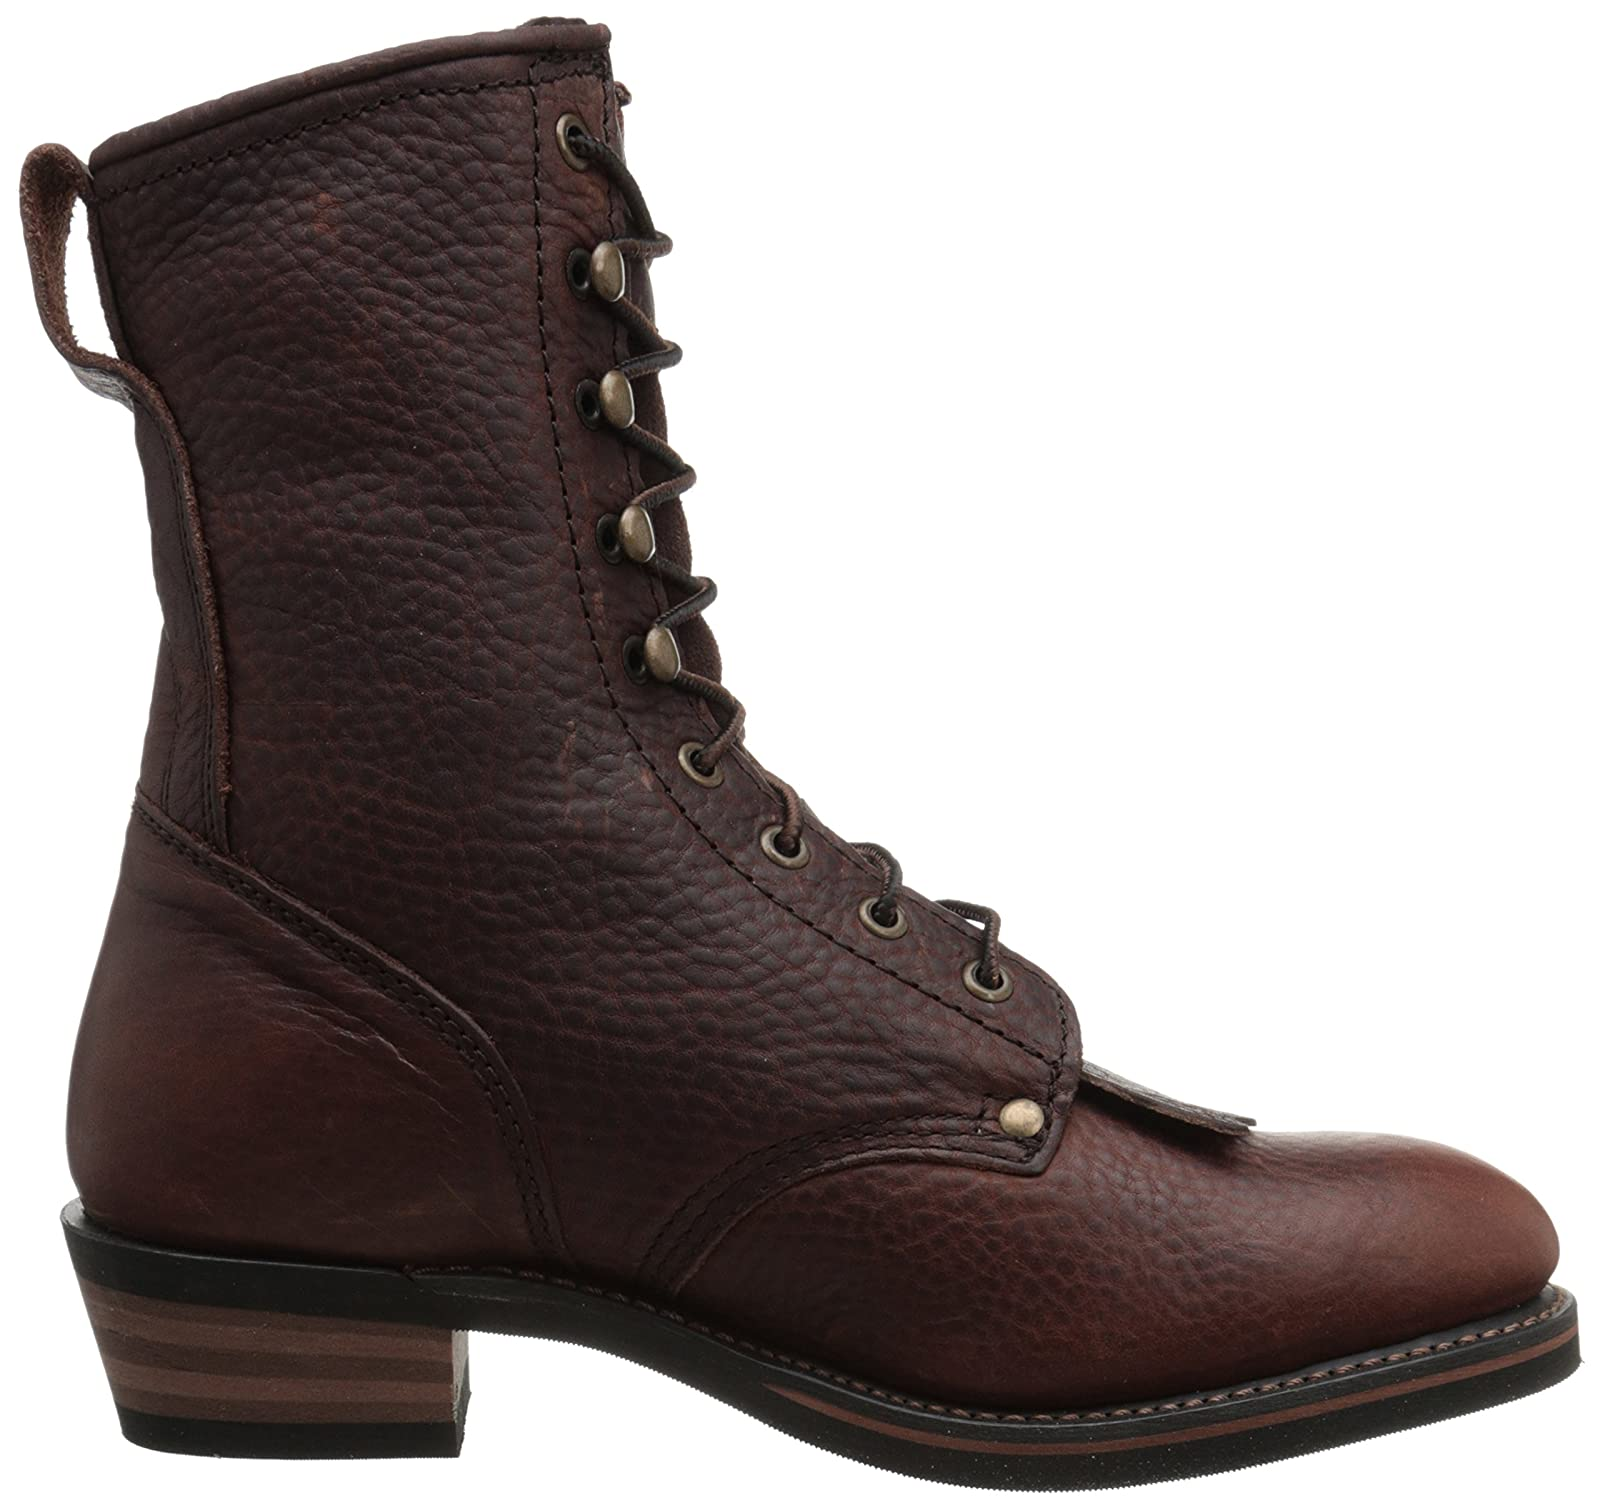 Adtec Men's 9 Inch Packer-M Boot Chestnut 9 M US - 7